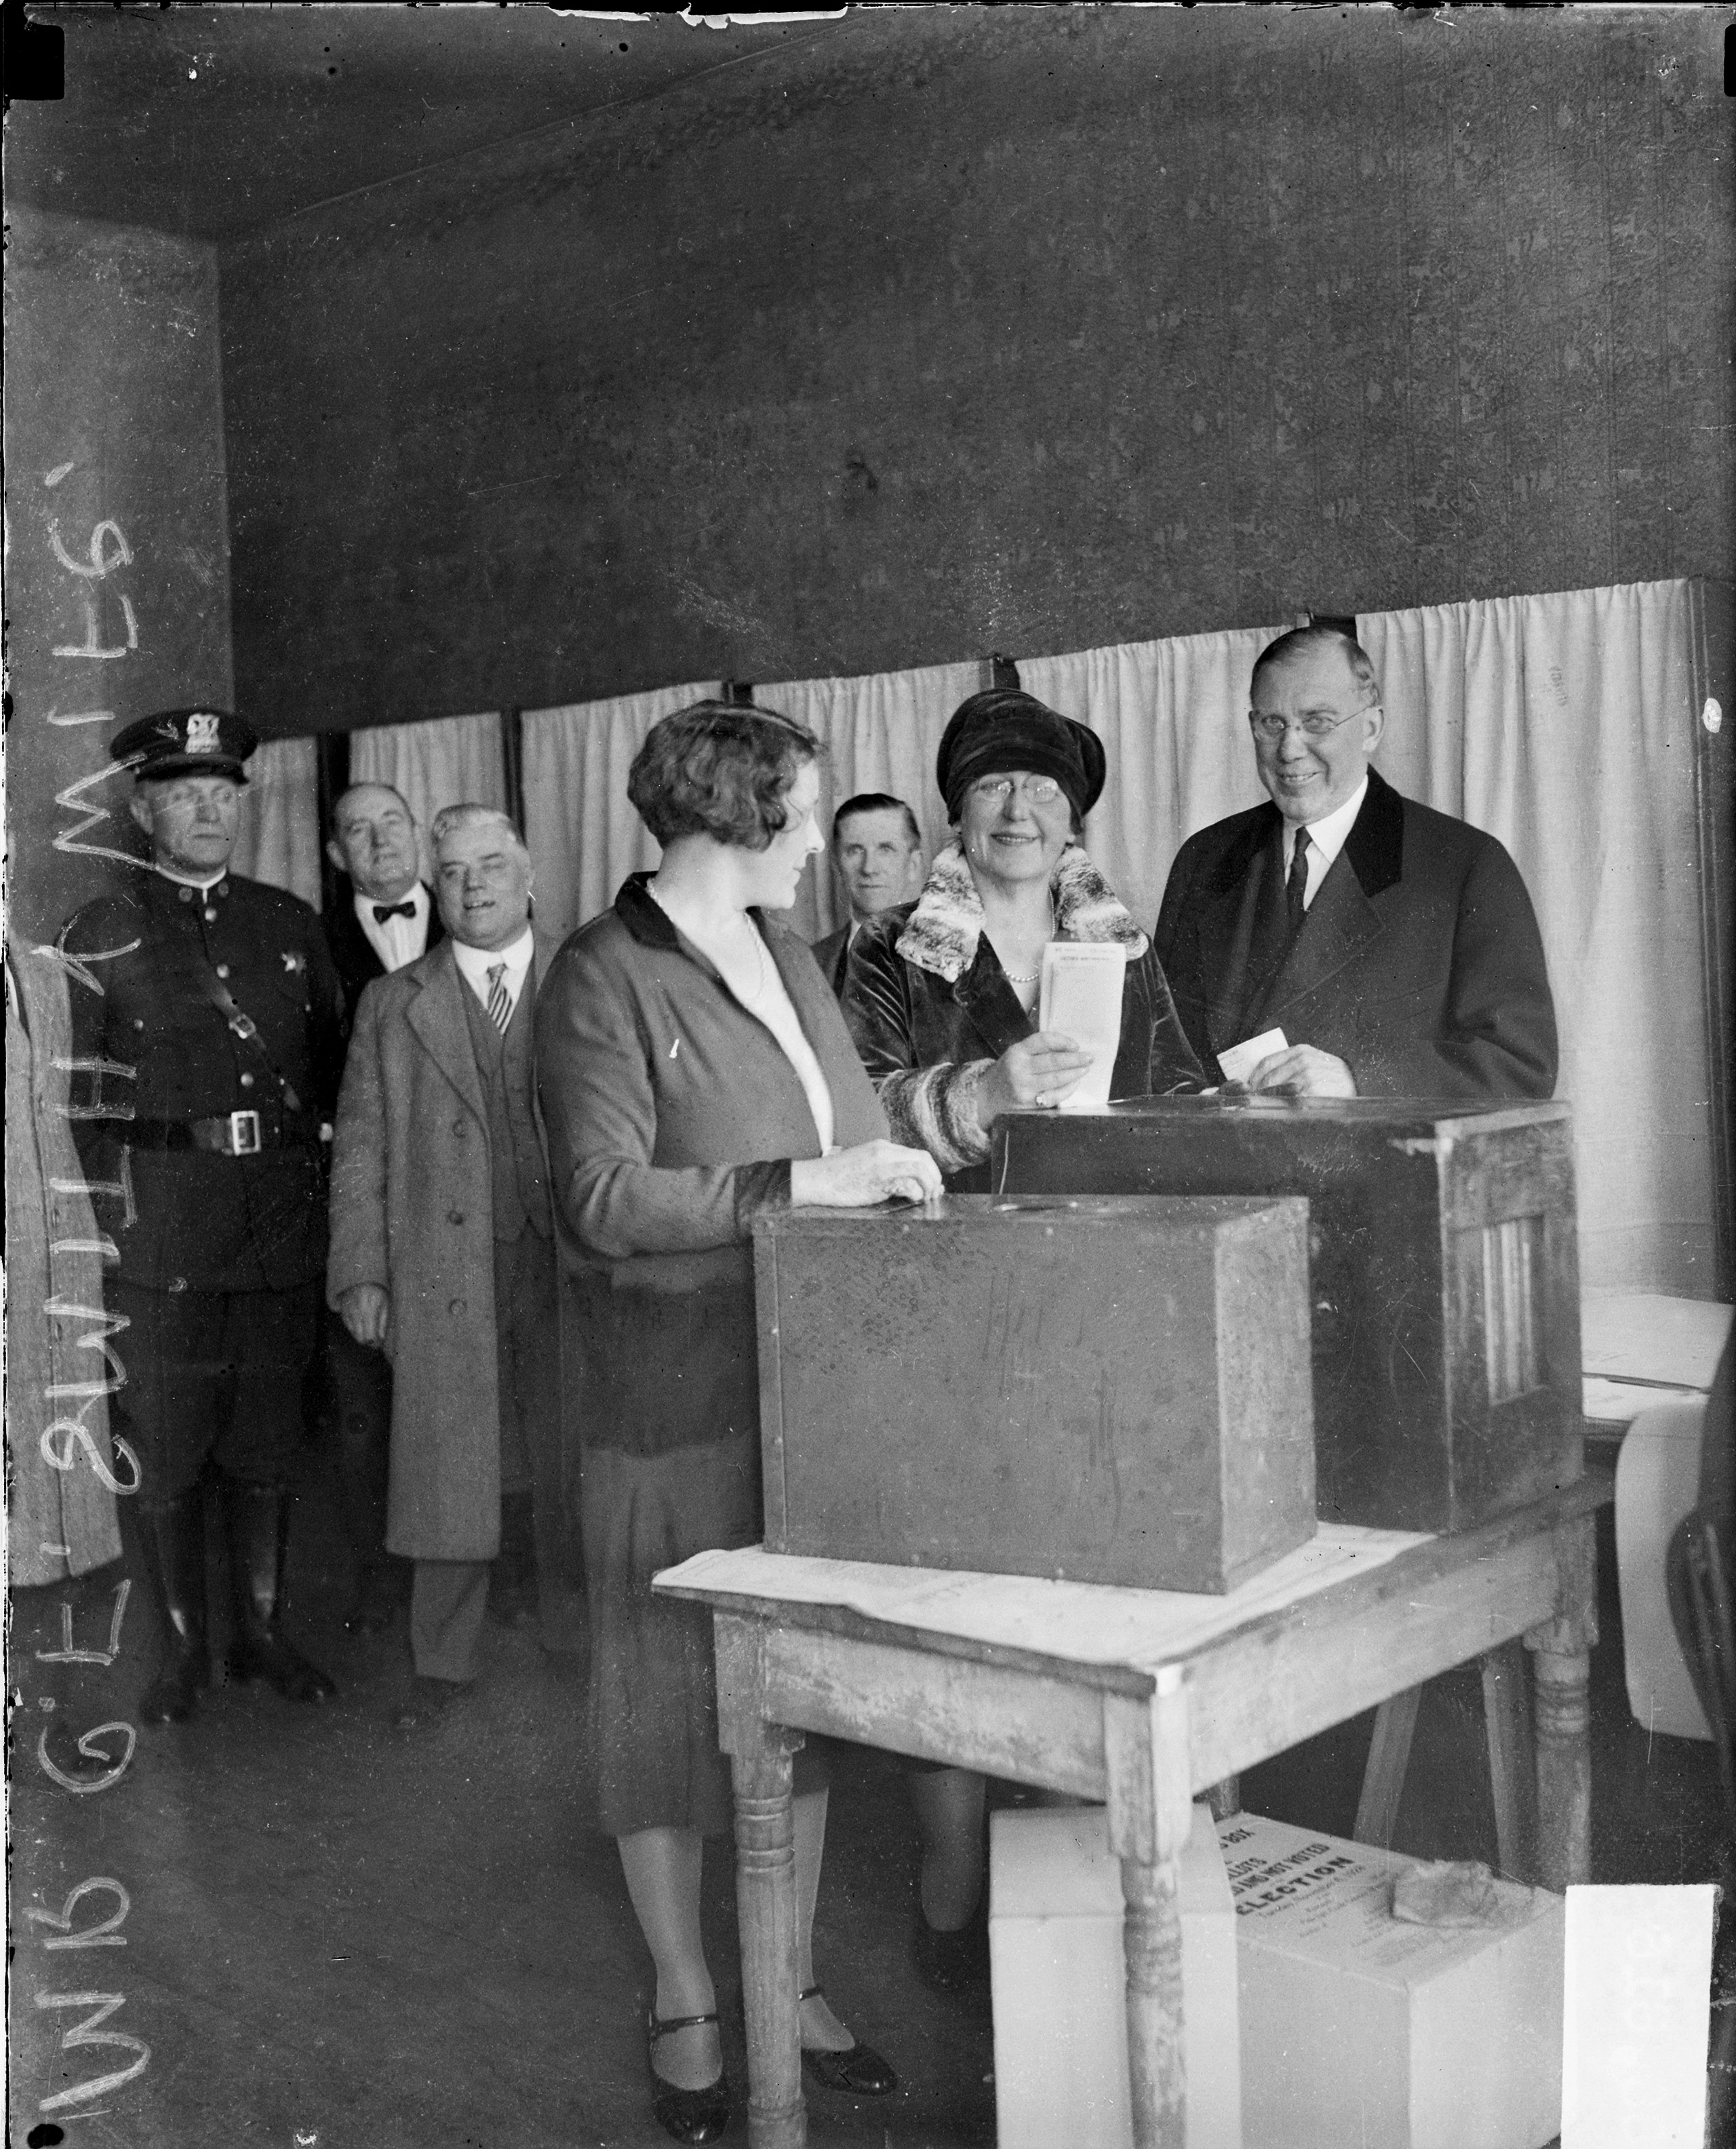 Clayton F. Smith, Deputy Commissioner of City Works, and his wife, Mayme Paschen, looking toward the camera, standing next to a ballot box at a voting poll center in Chicago, in 1928.